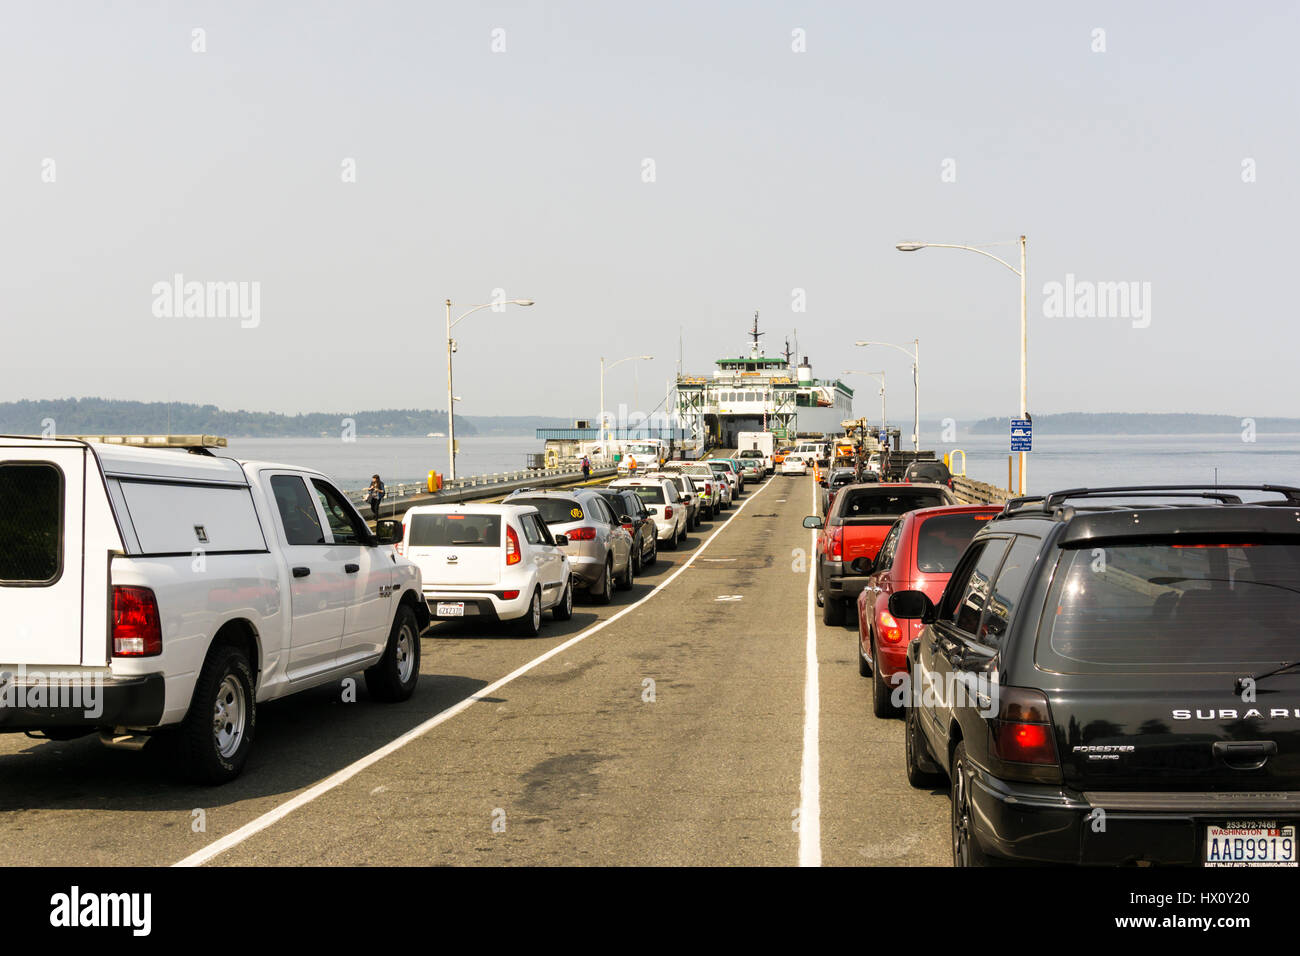 Queue of cars at Fauntleroy in West Seattle waiting to board MV Sealth to cross Puget Sound. - Stock Image